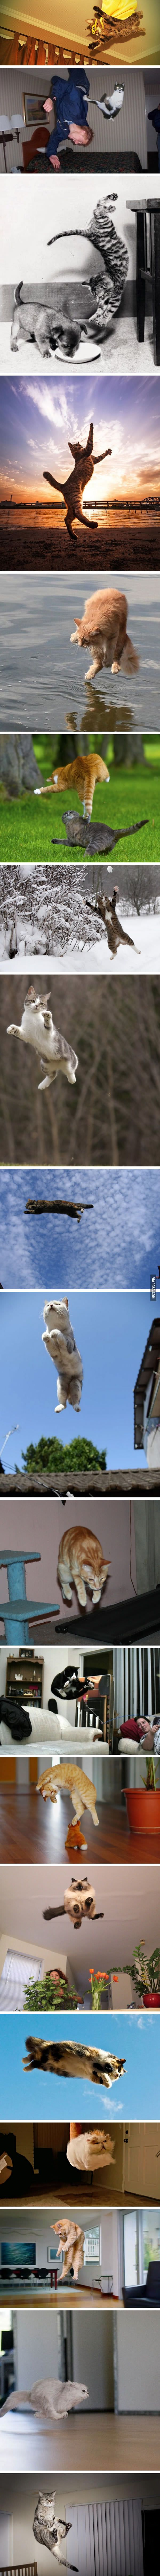 19 Hover Cats Show You They're Preparing To Dominate The World By Learning How To Fly - 9GAG